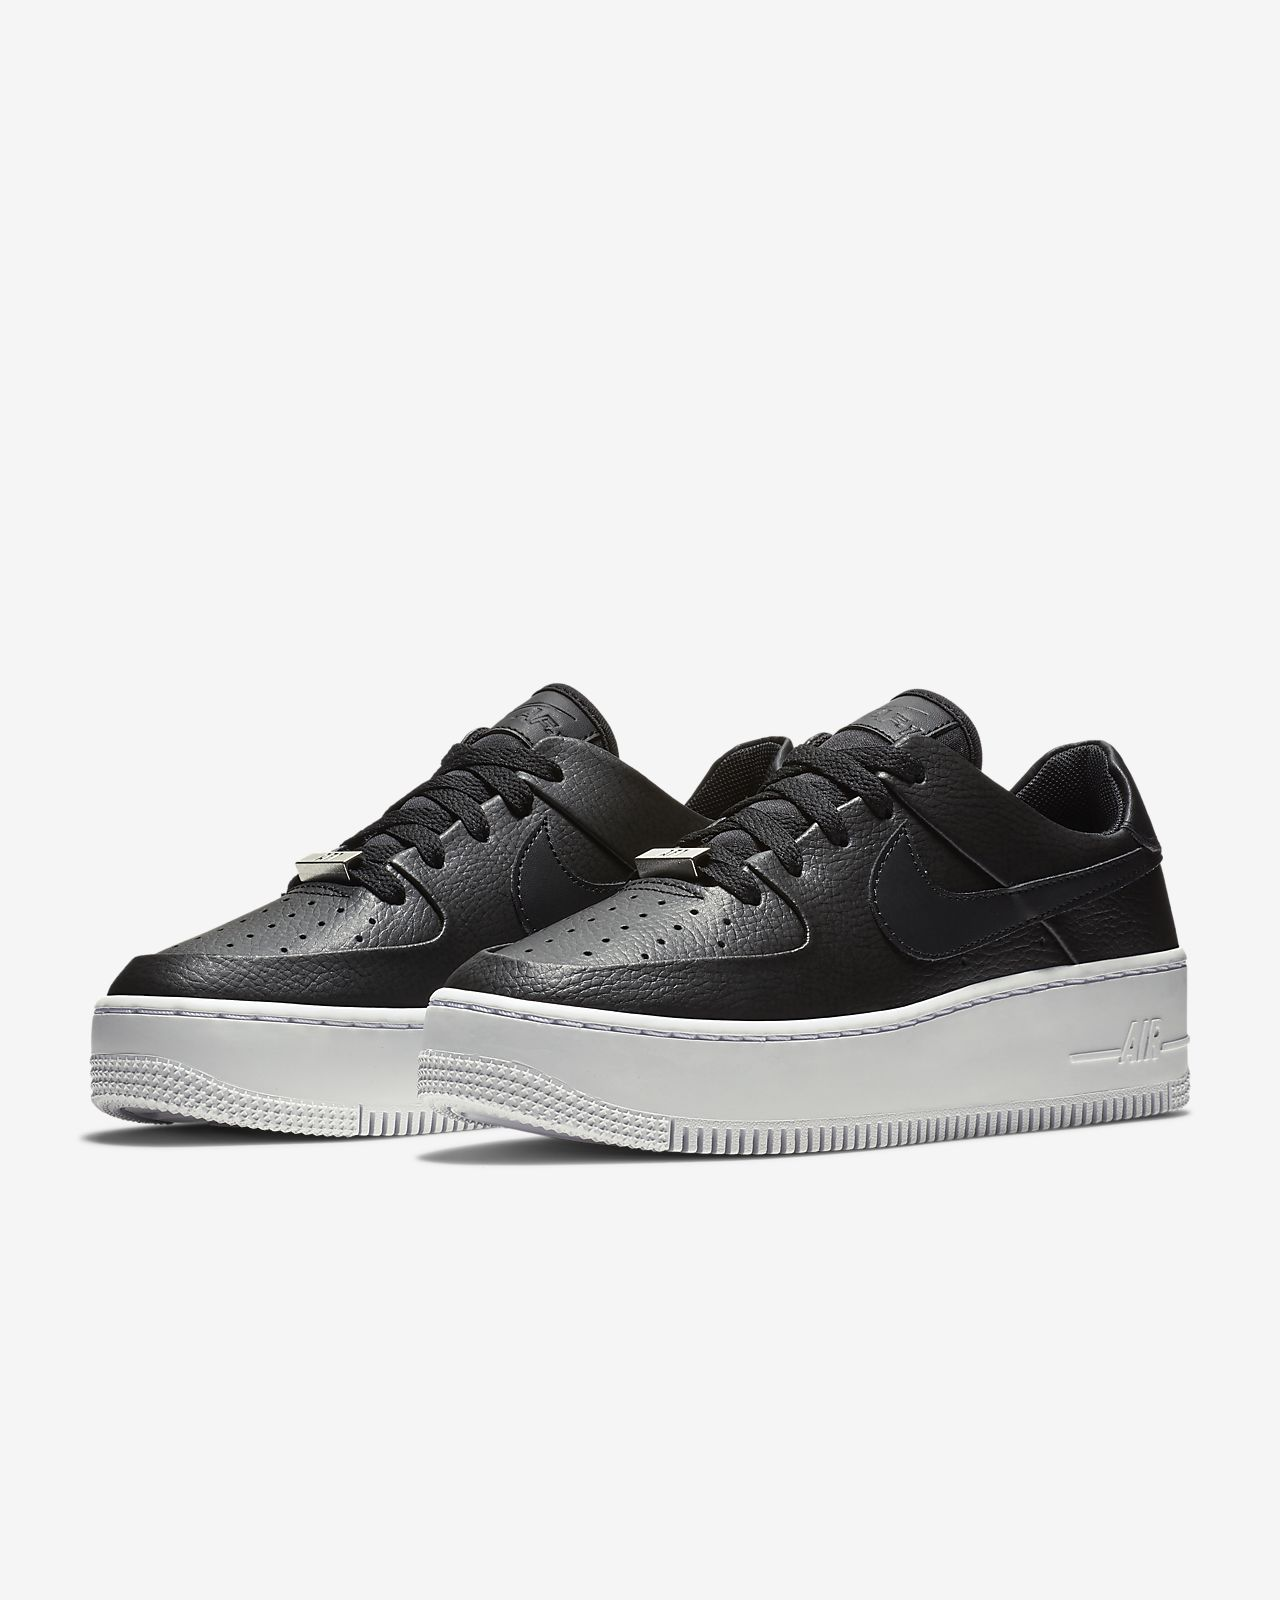 nike air force 1 femme paillette